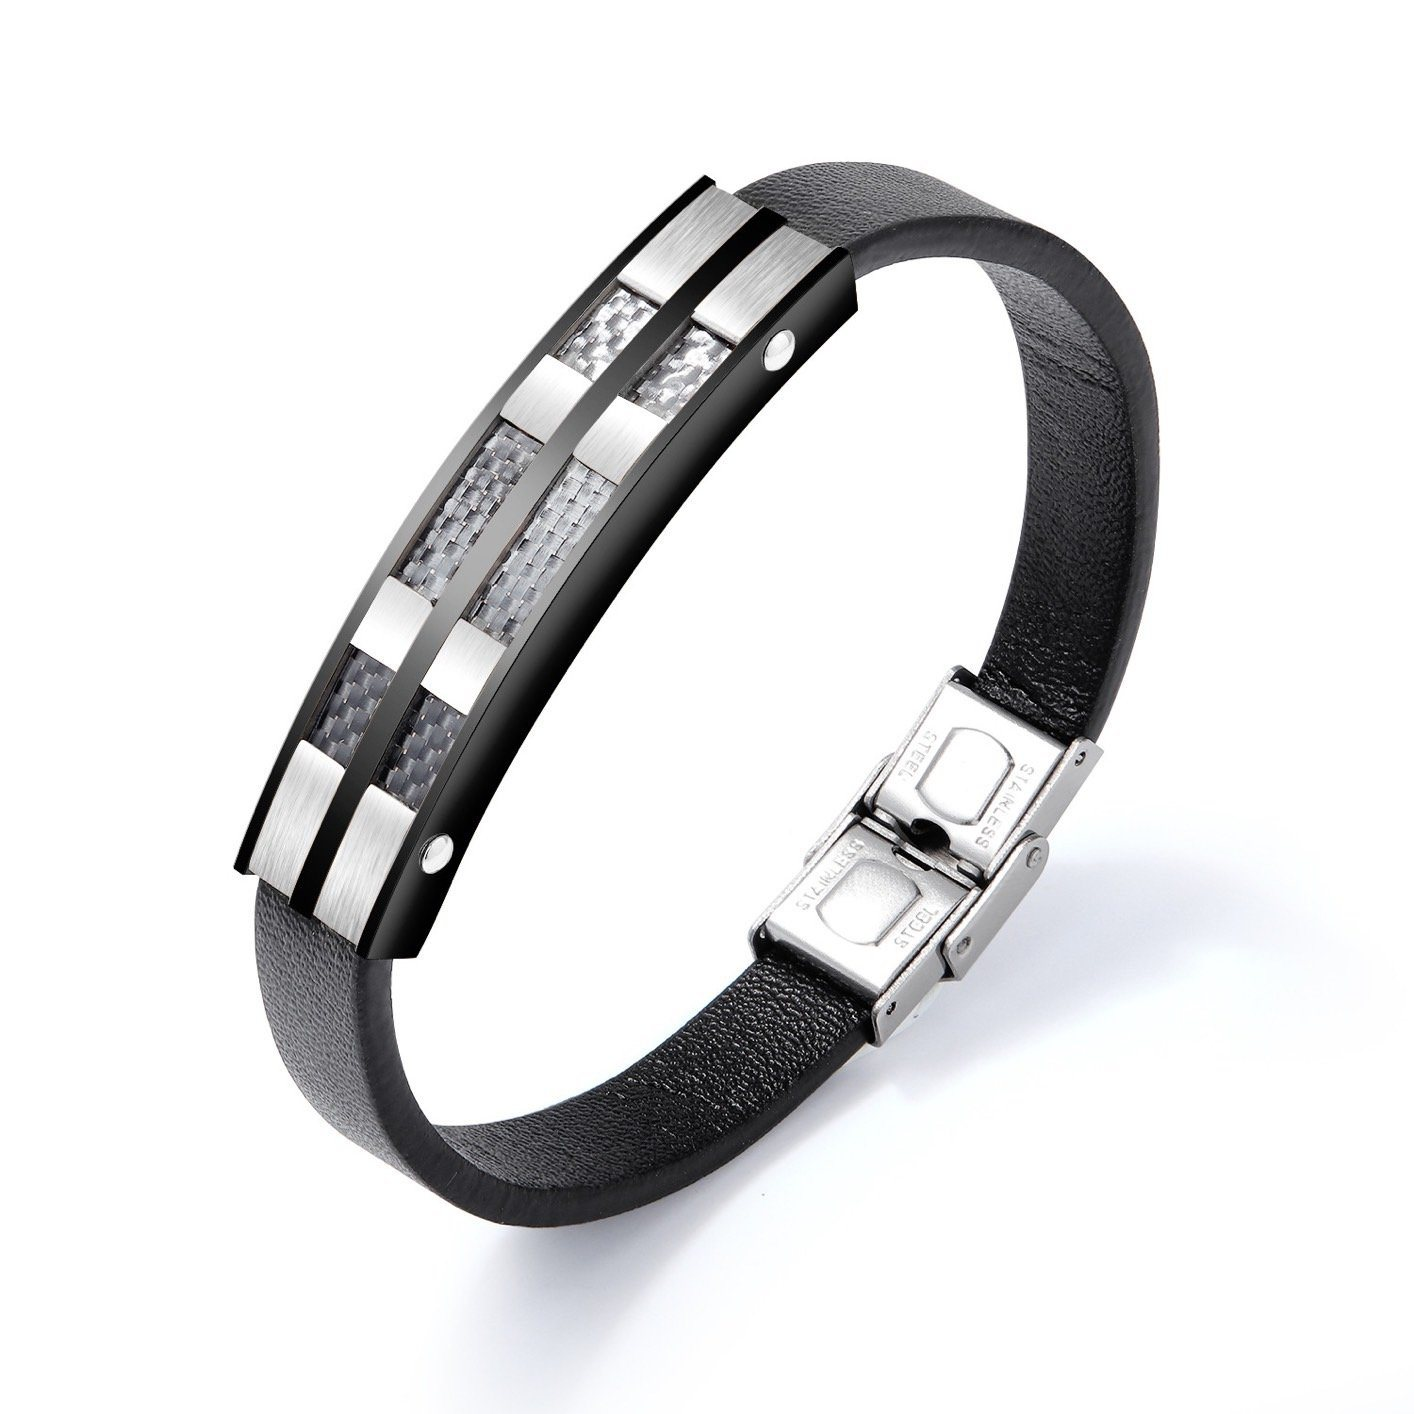 Leather Bracelet With Real Carbon Fiber Inlay Pur Carbon